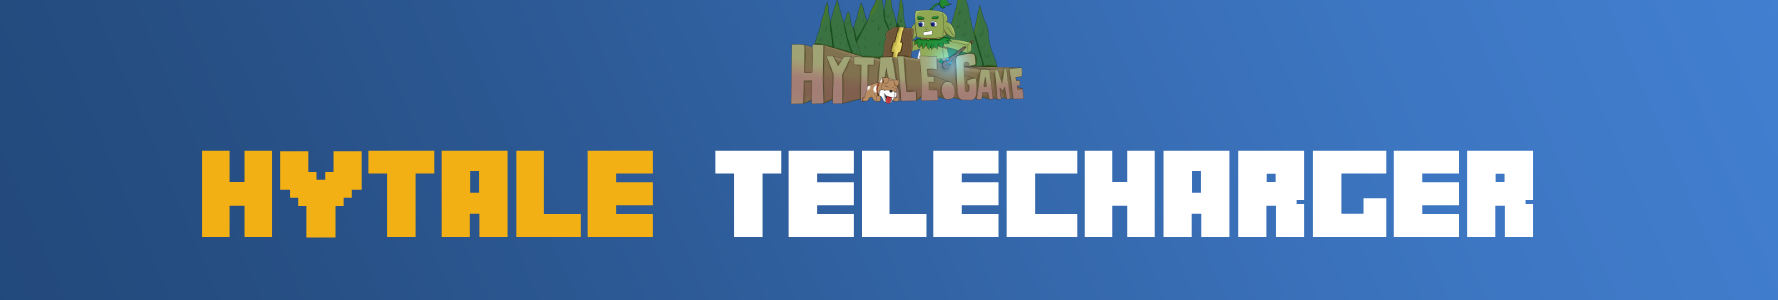 hytale-telecharger.png